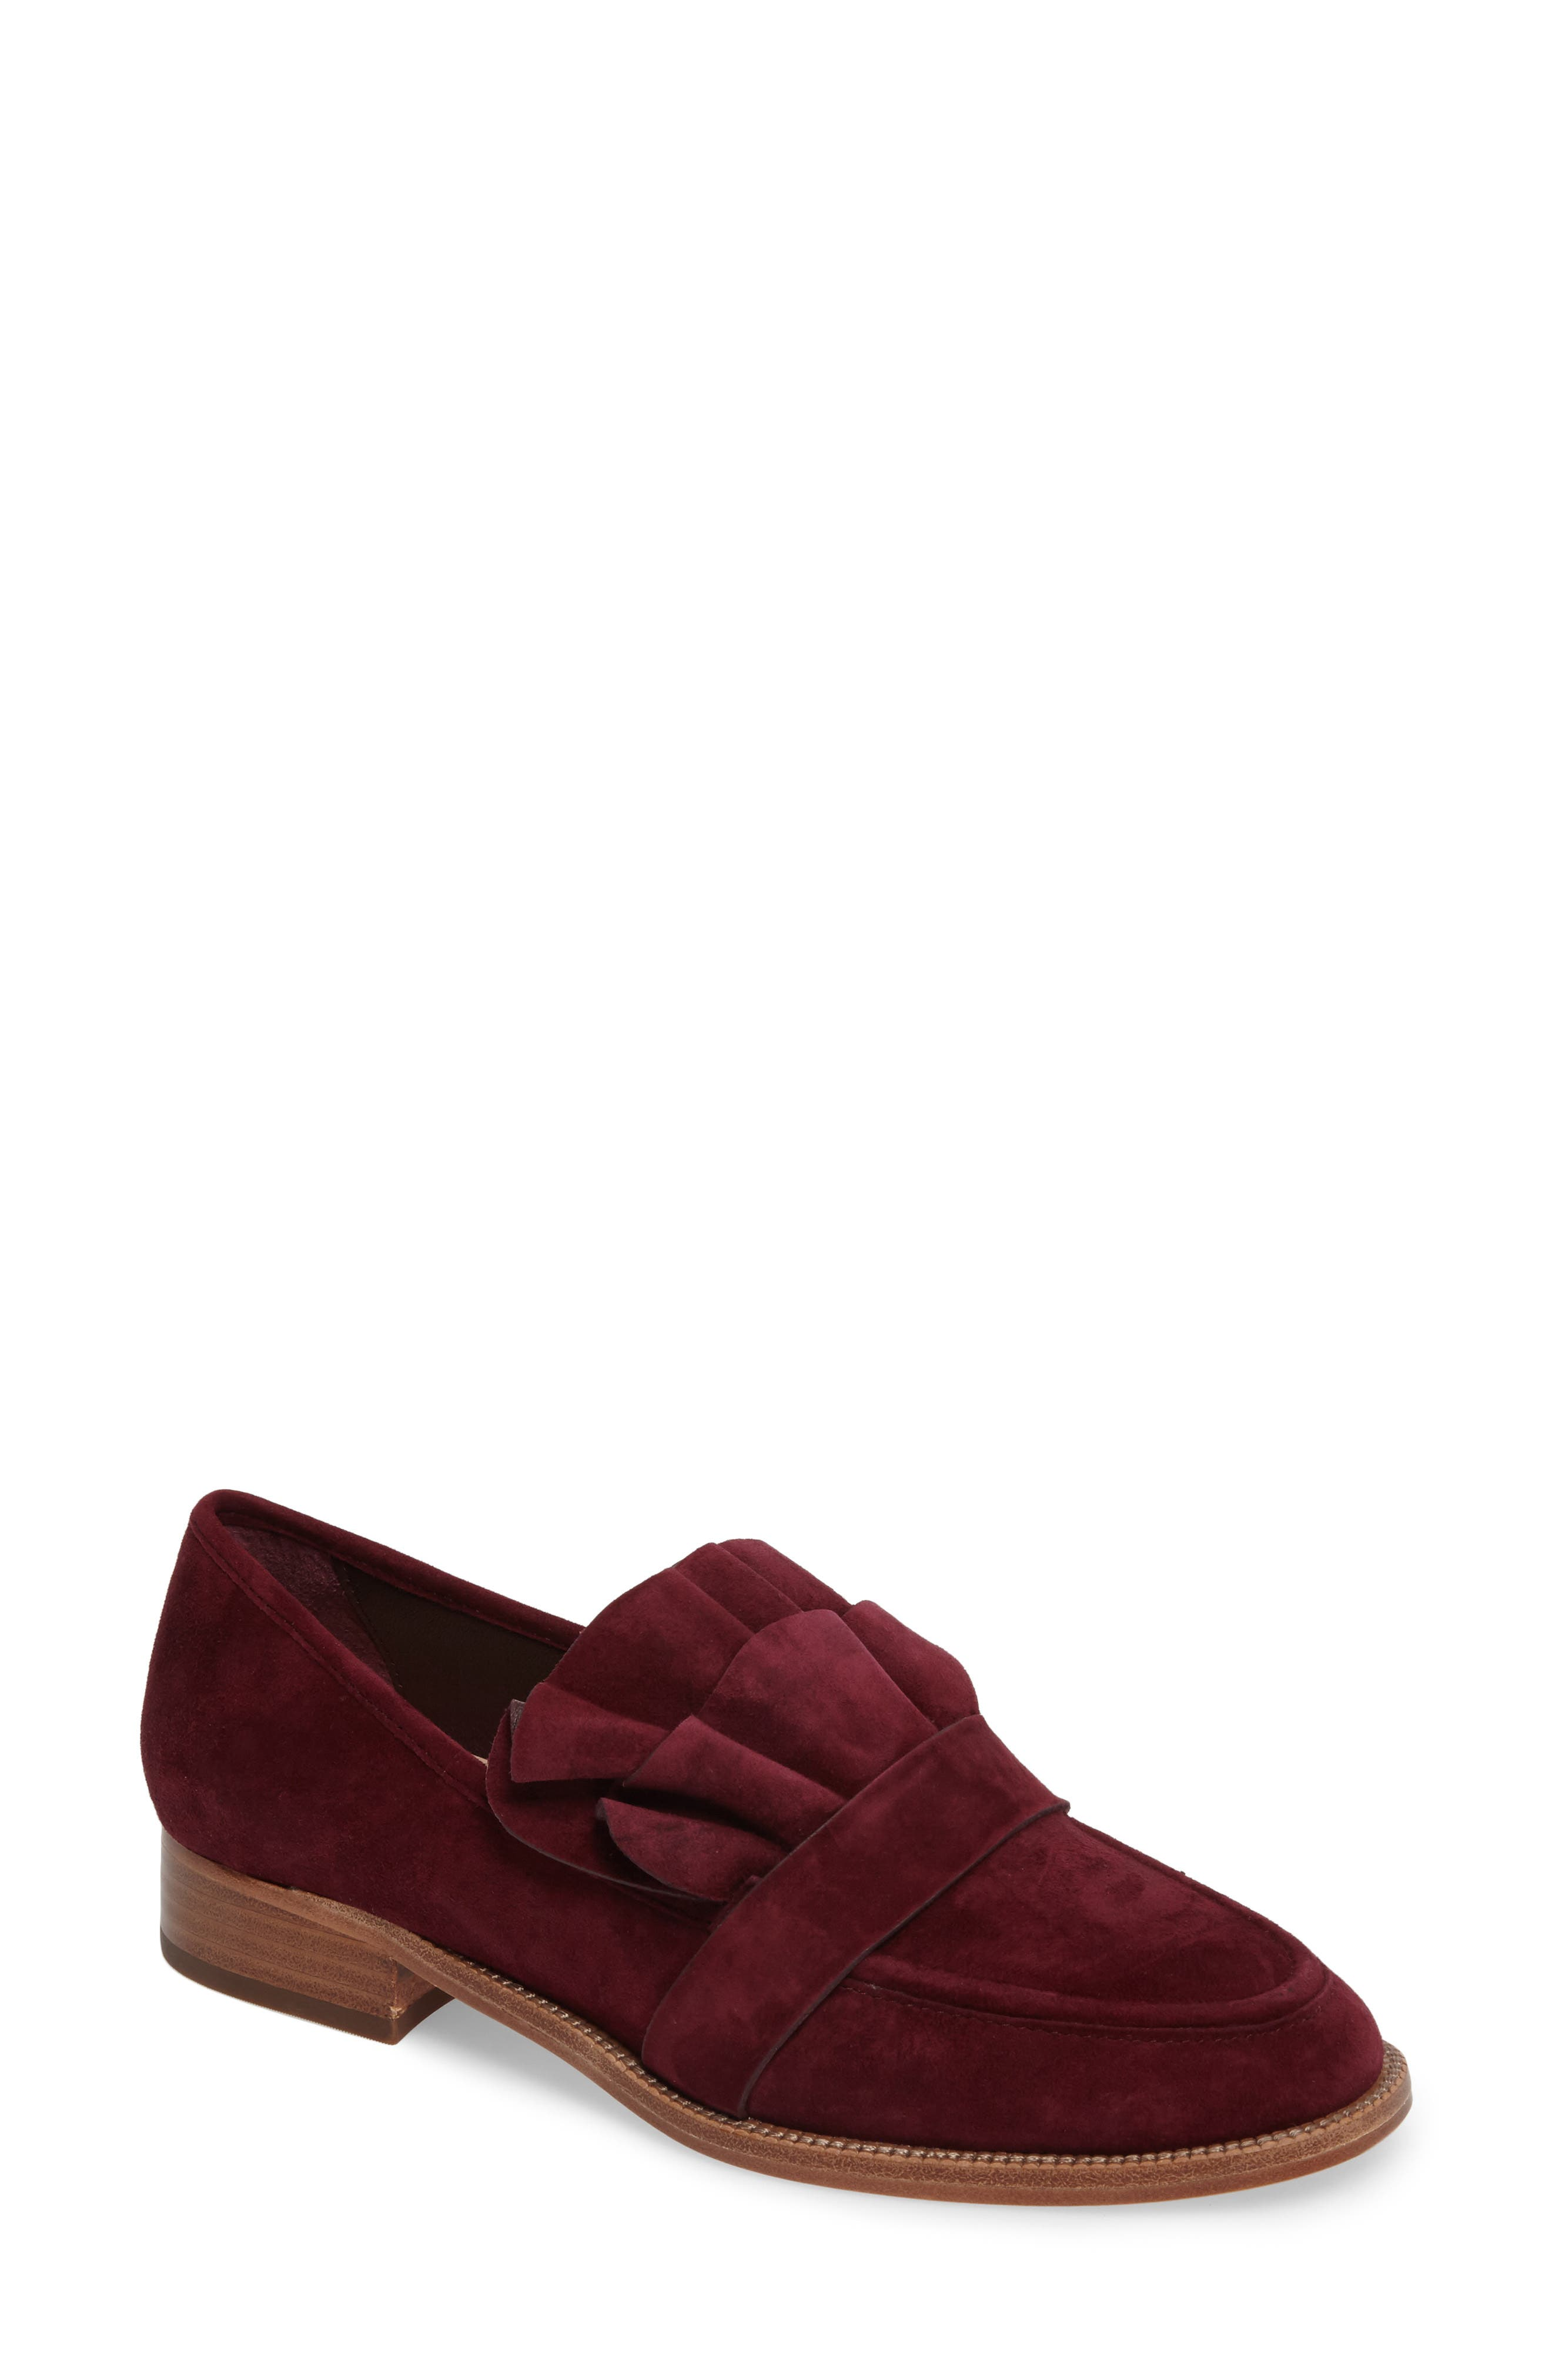 Tenley Ruffled Loafer,                         Main,                         color, Merlot Suede